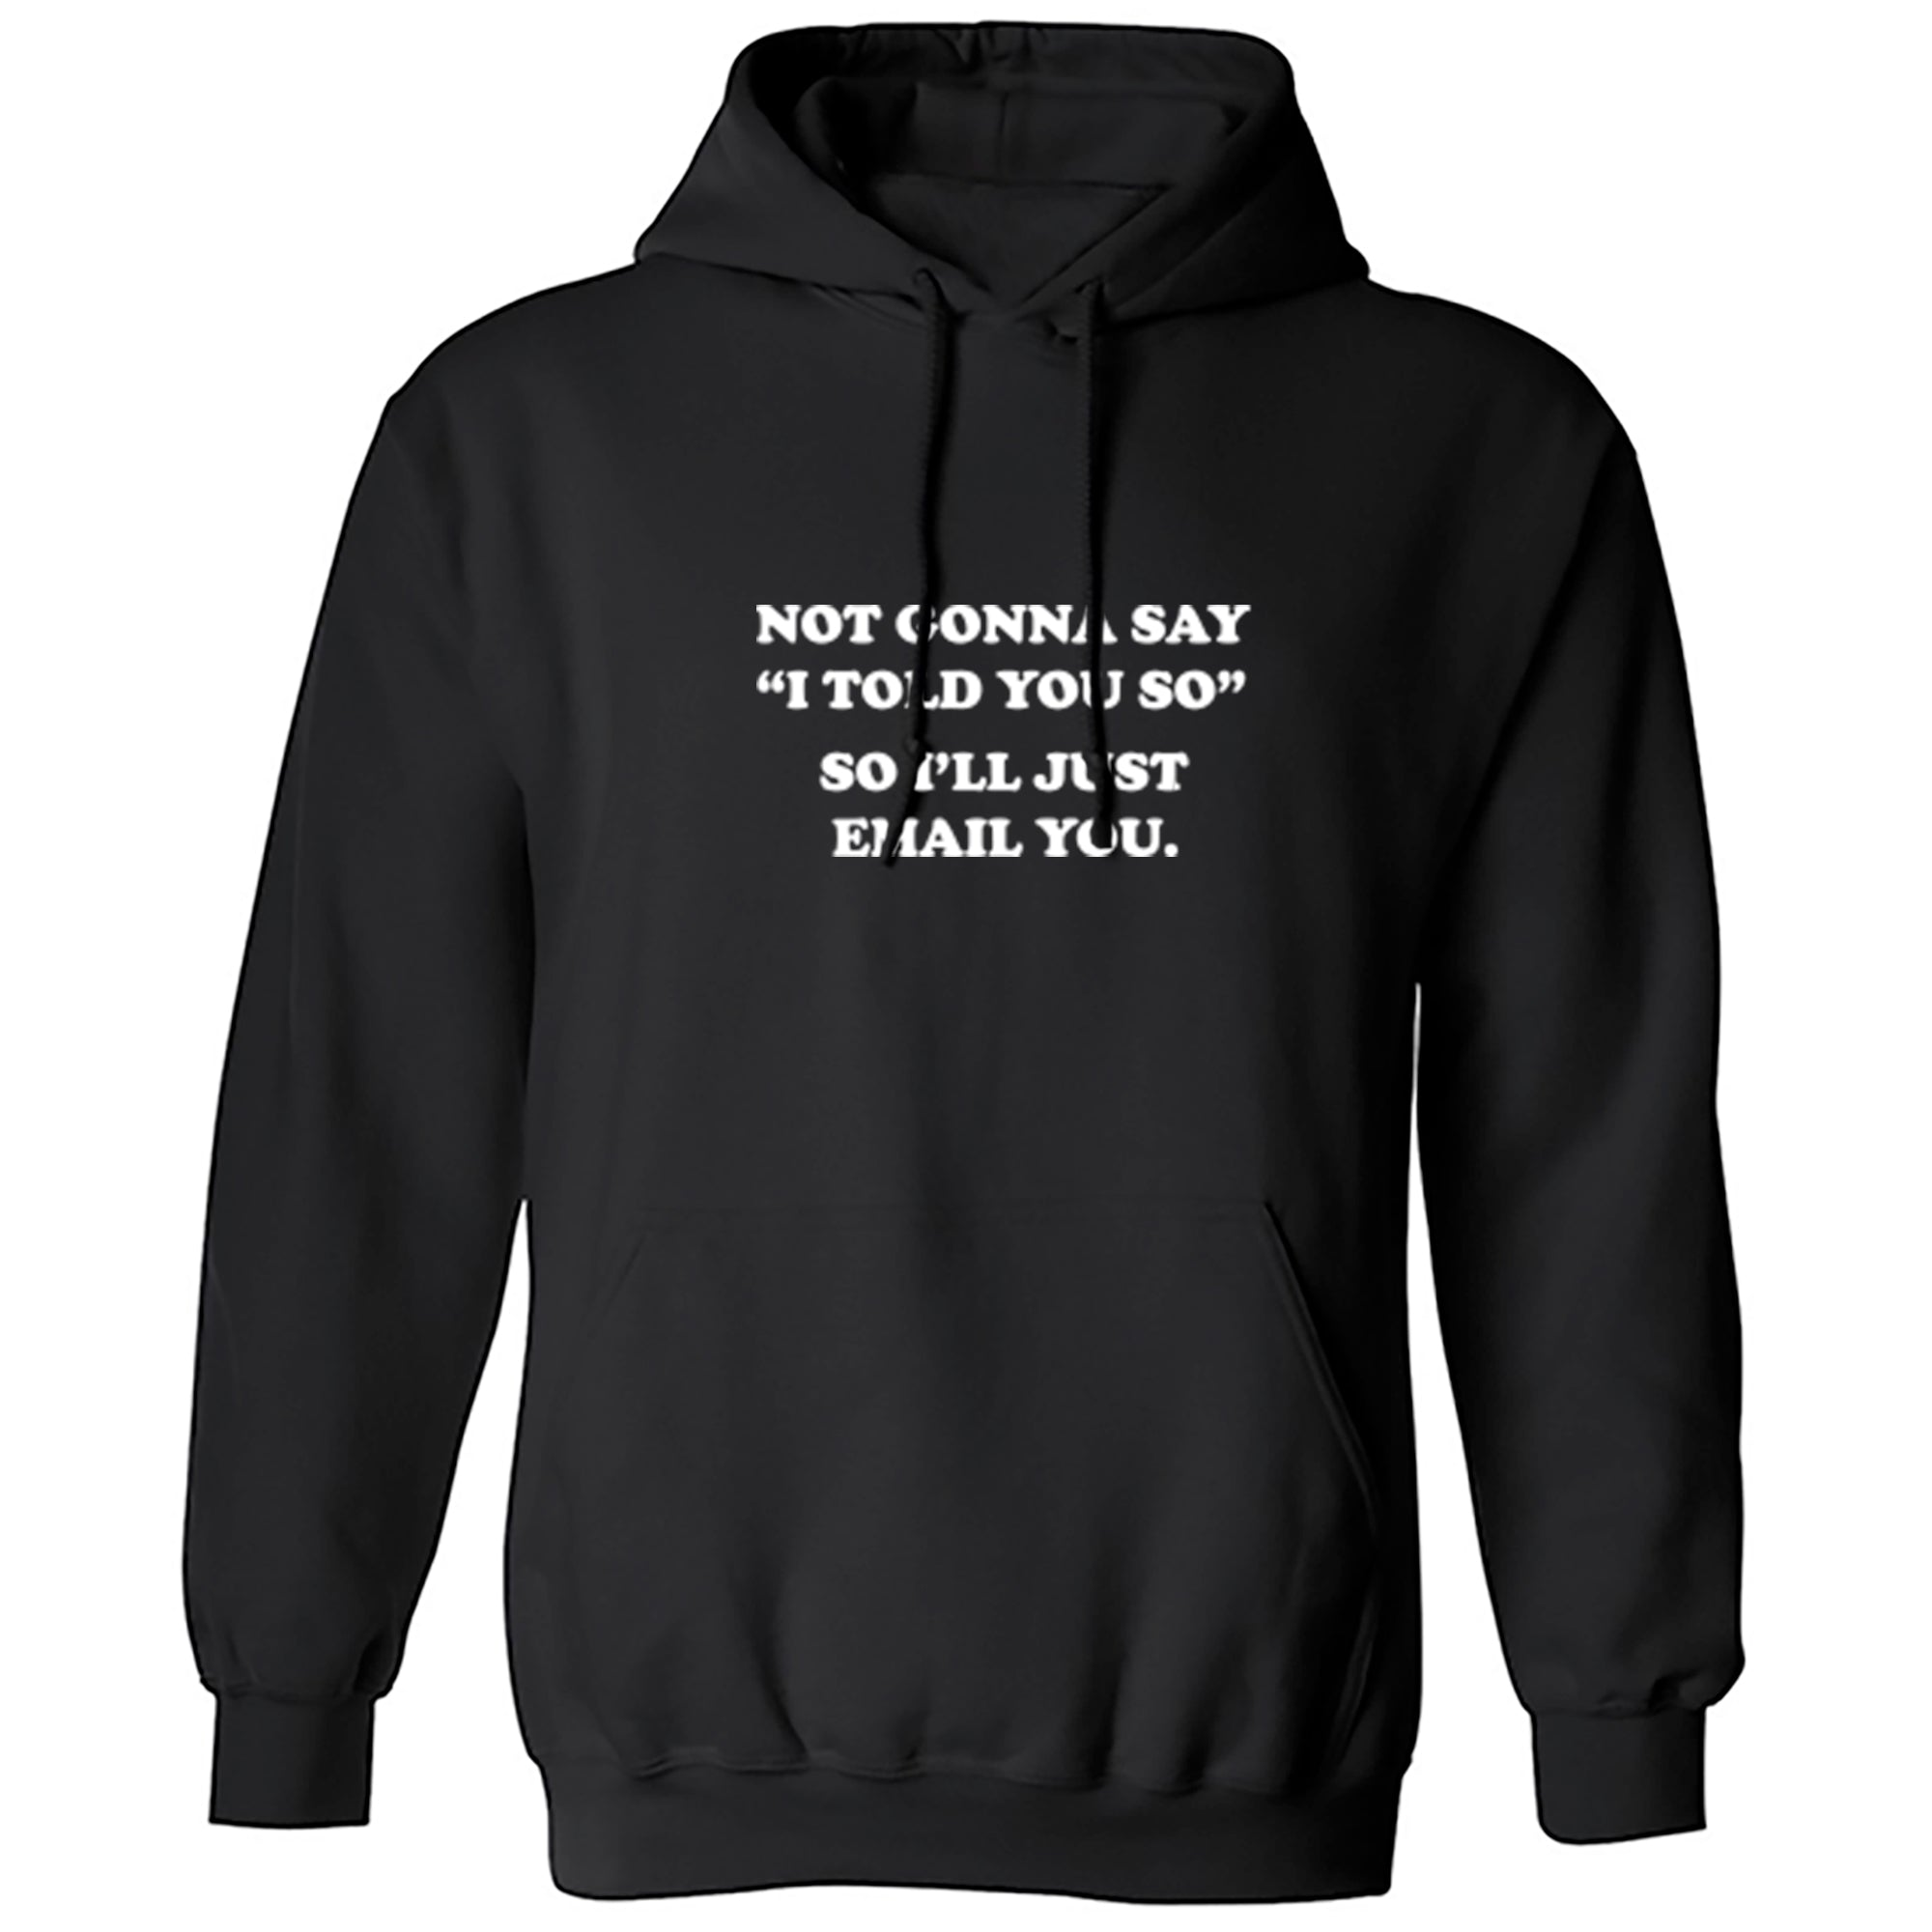 "Not Gonna Say ""I Told You So"" So I'll Just Email You Unisex Hoodie S1159 - Illustrated Identity Ltd."